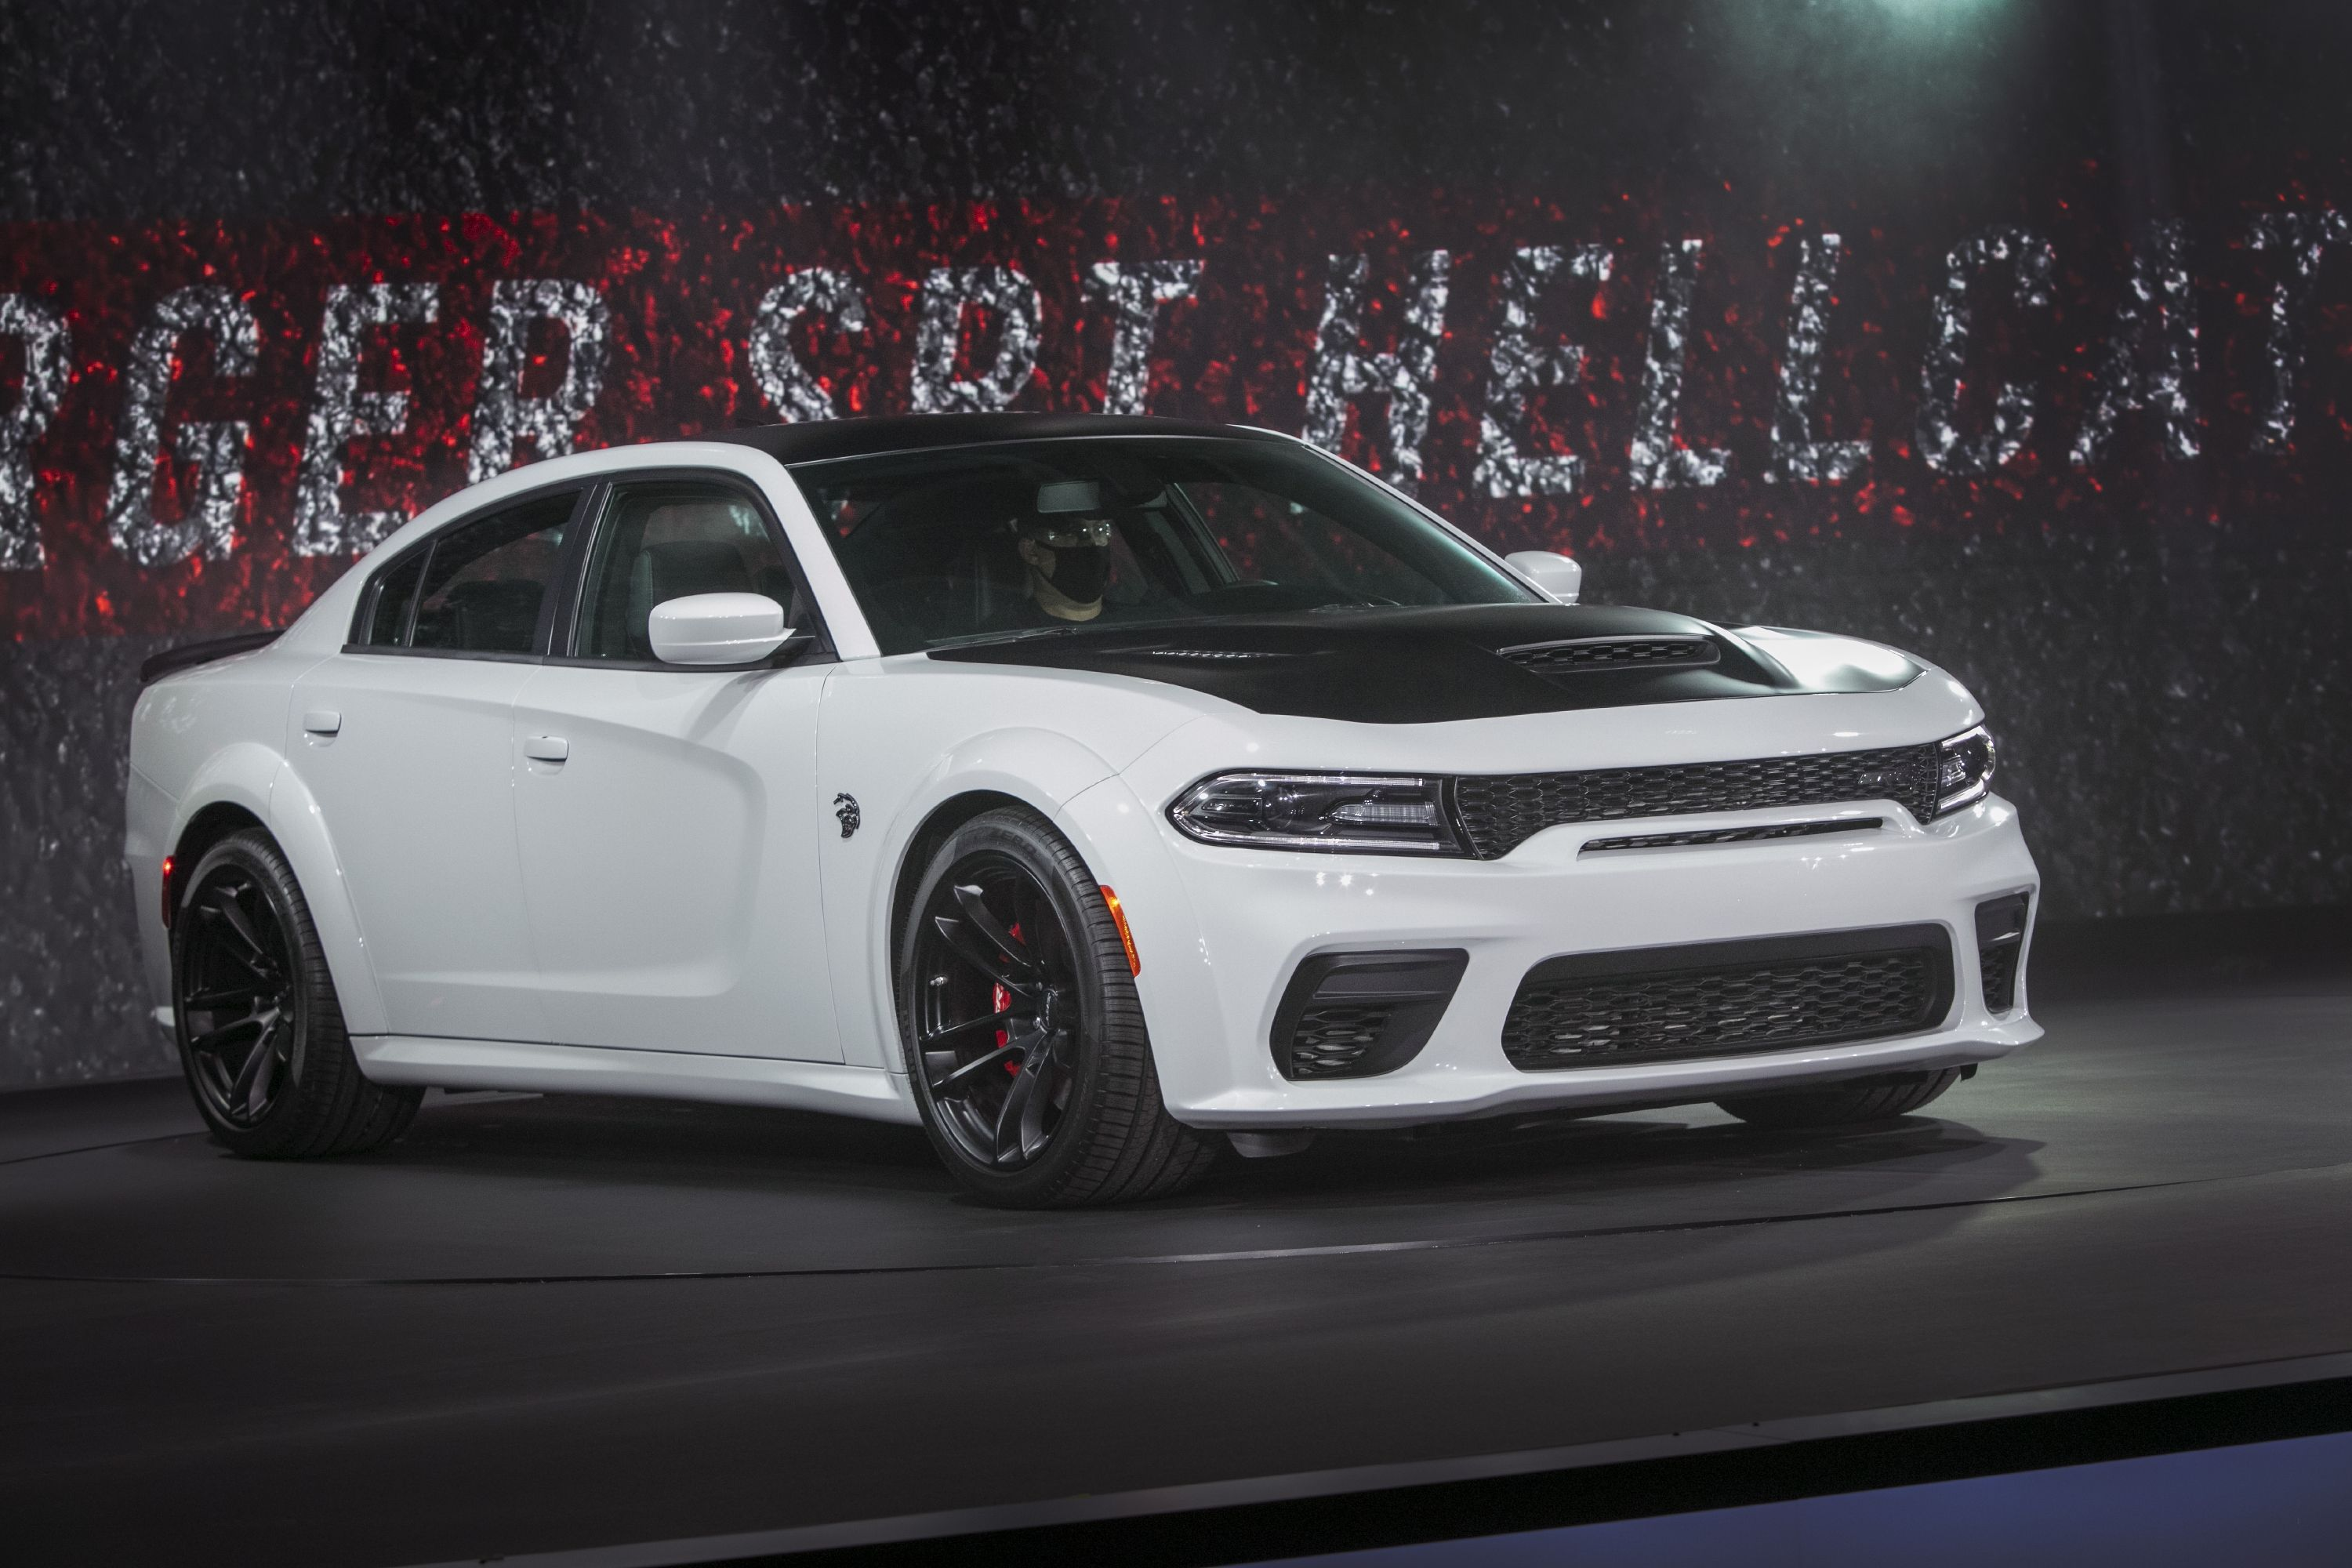 2021 Dodge Charger Srt Hellcat Redeye Is Both Most Powerful And Fastest Sedan Out There Top Speed In 2020 Srt Hellcat Charger Srt Hellcat Charger Srt